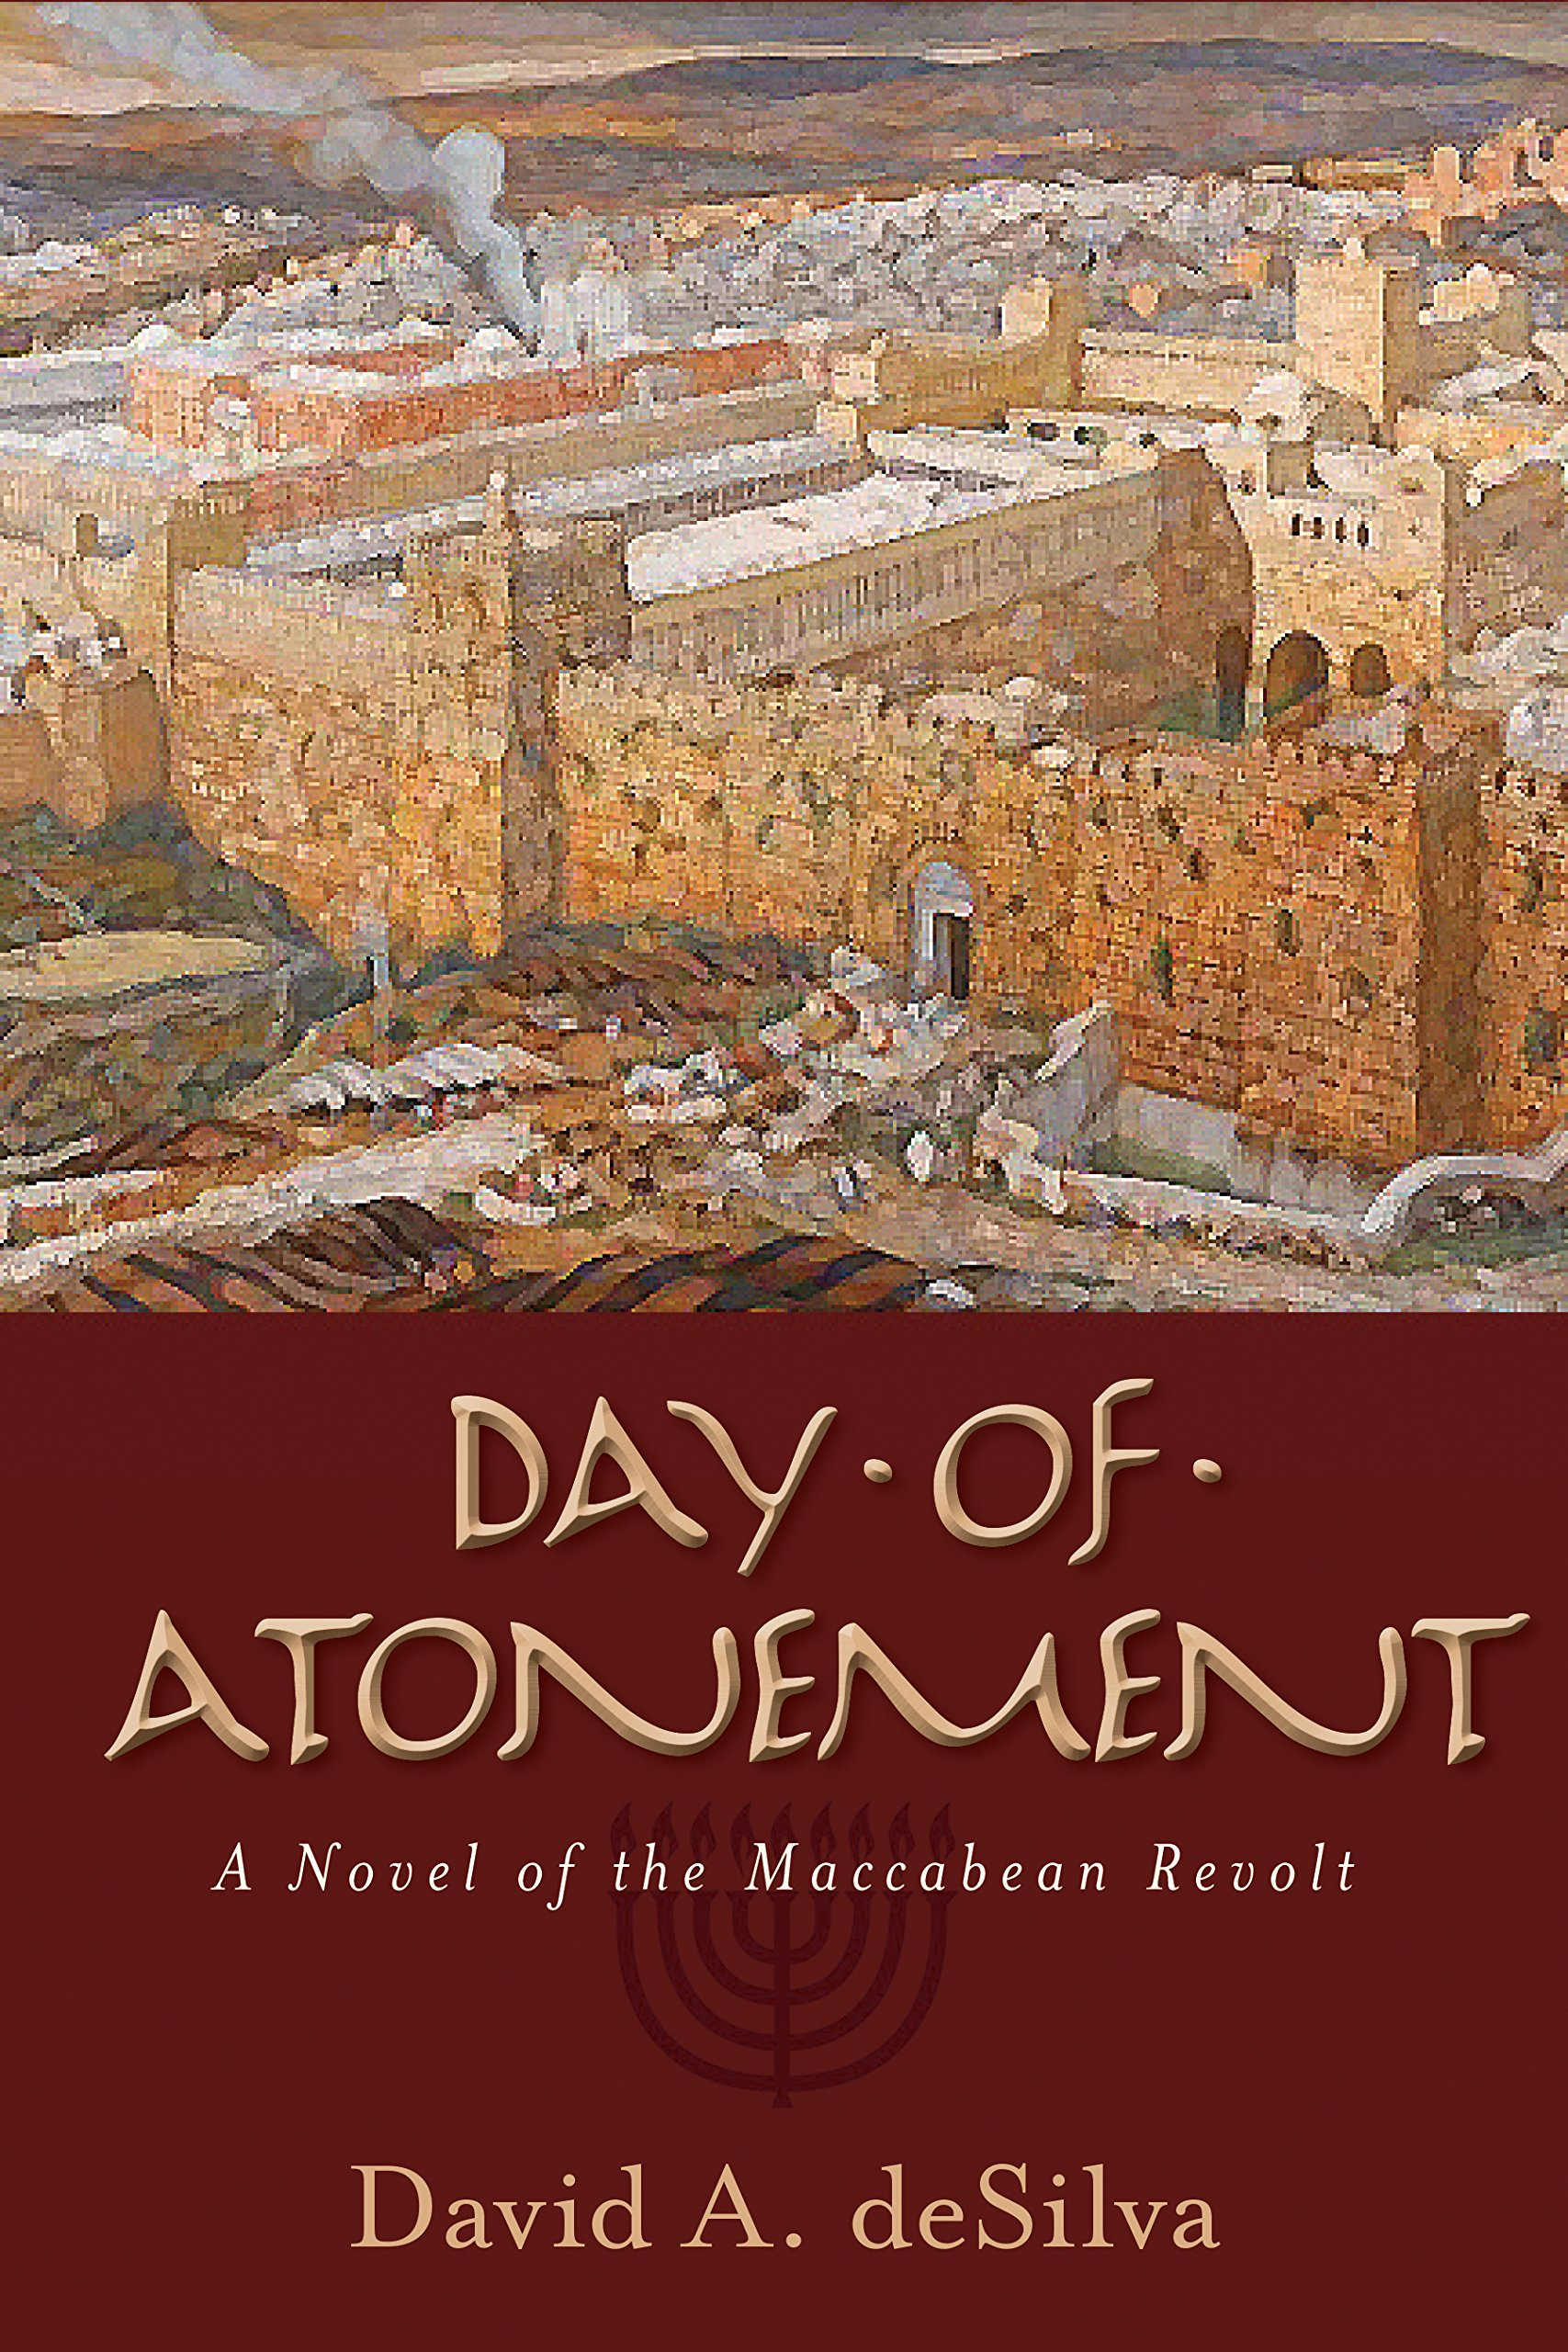 The day of atonement 2017